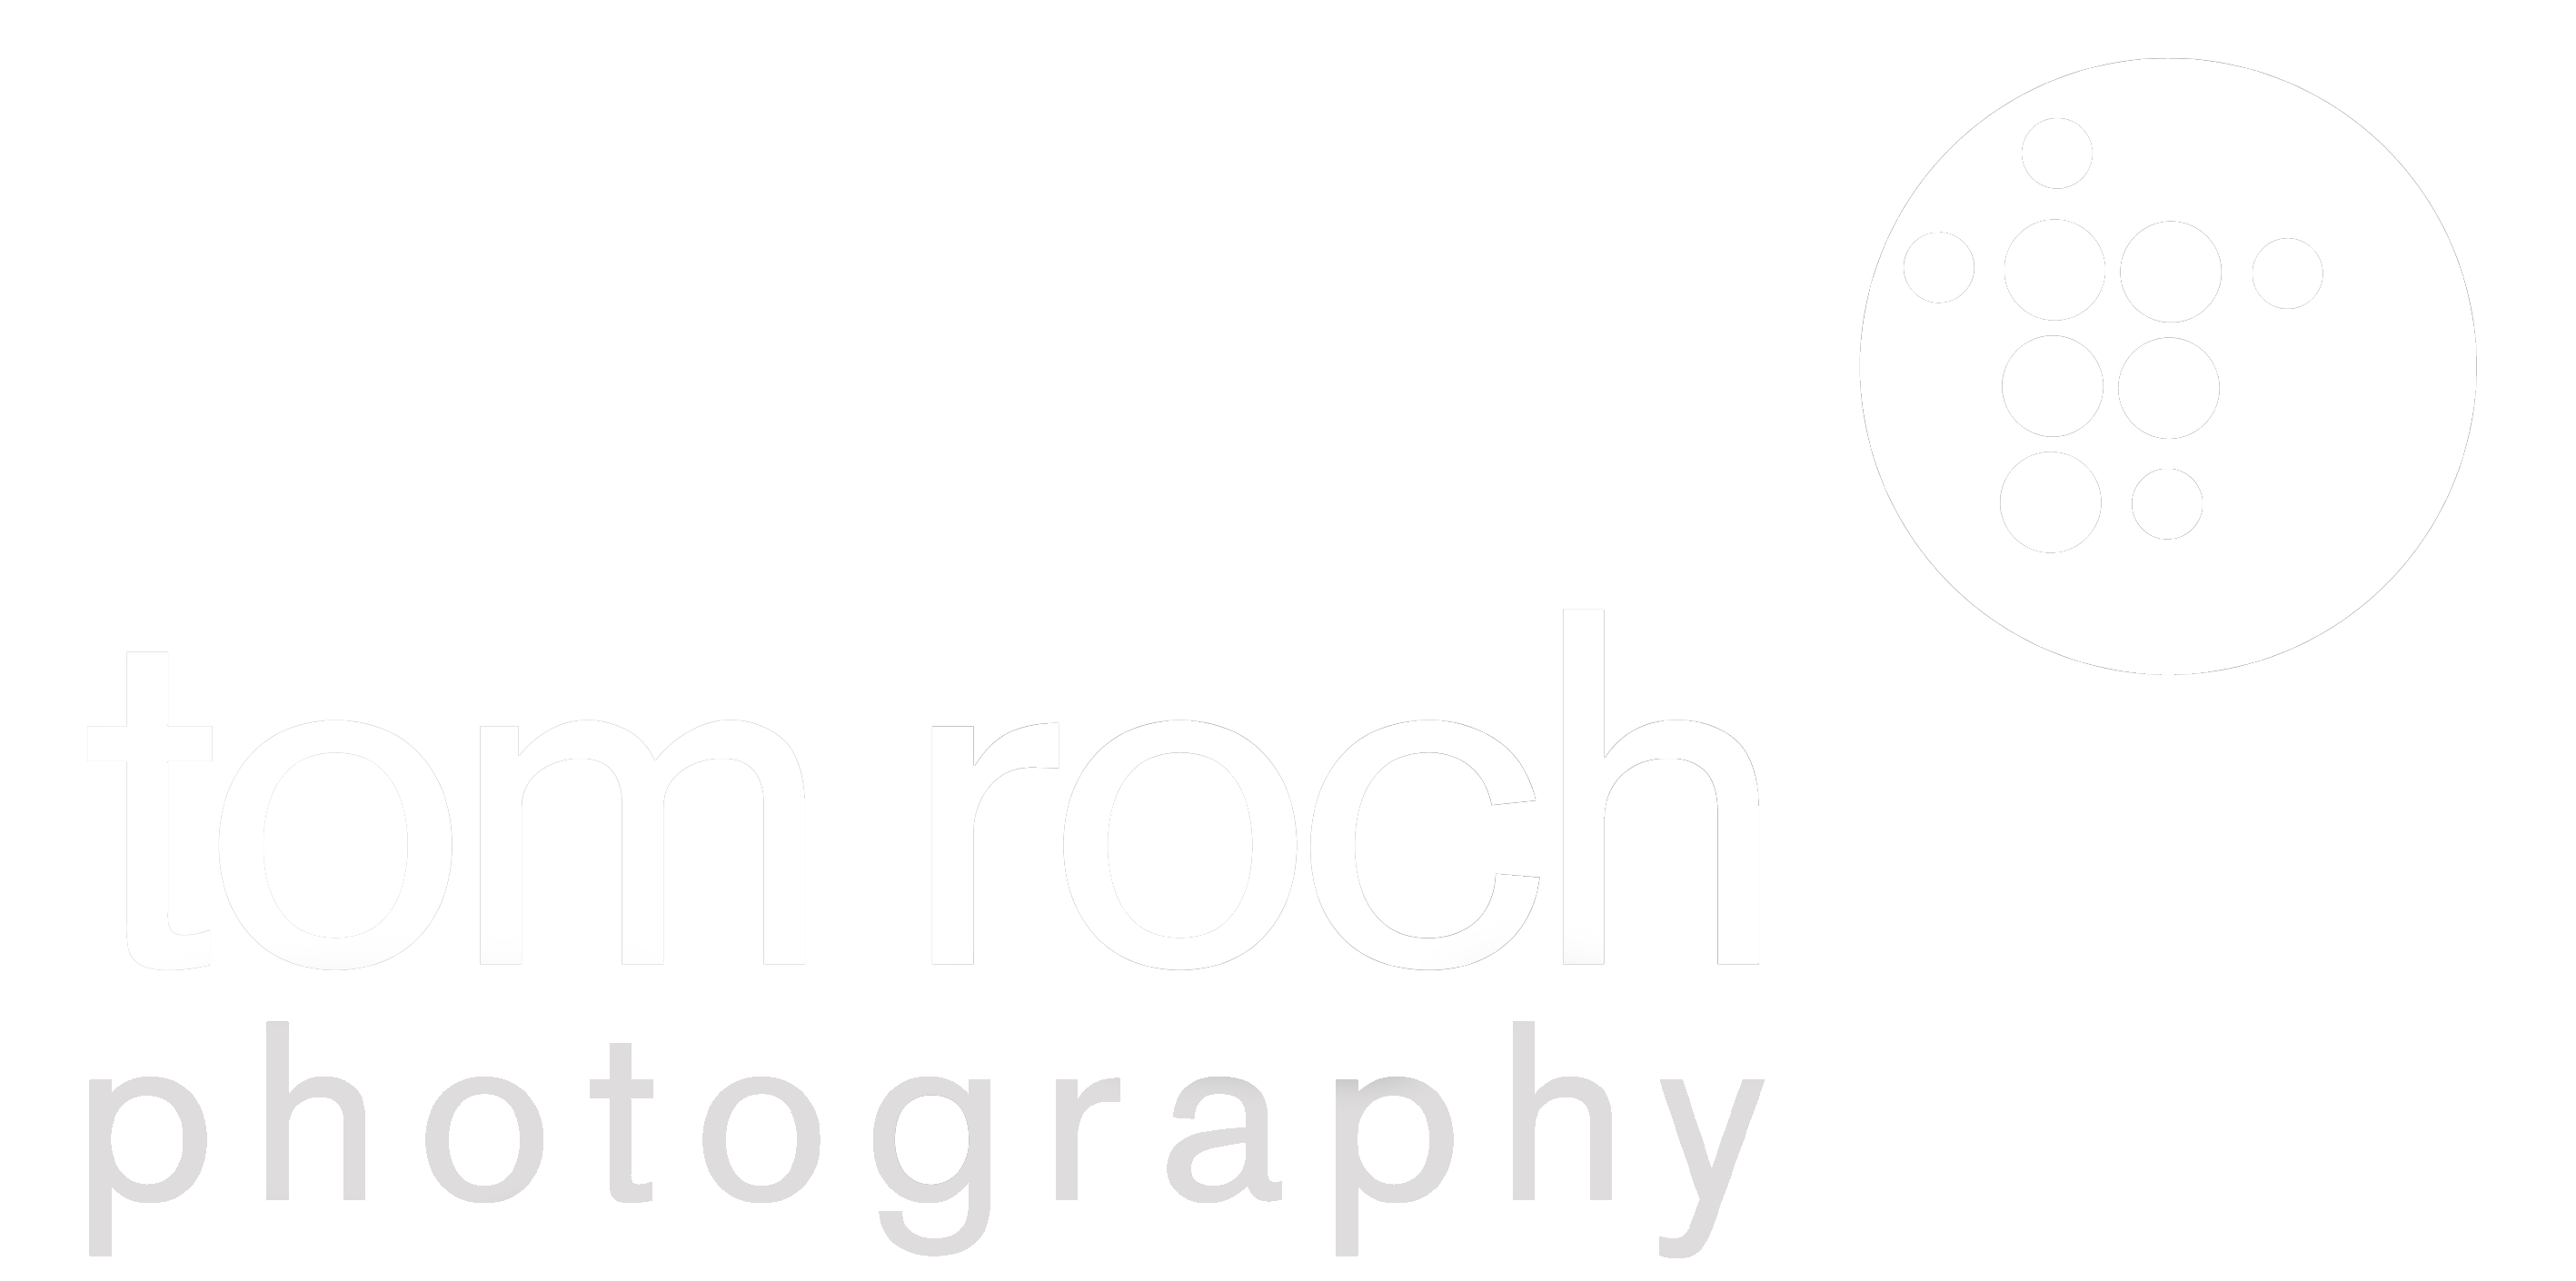 tom roch photography